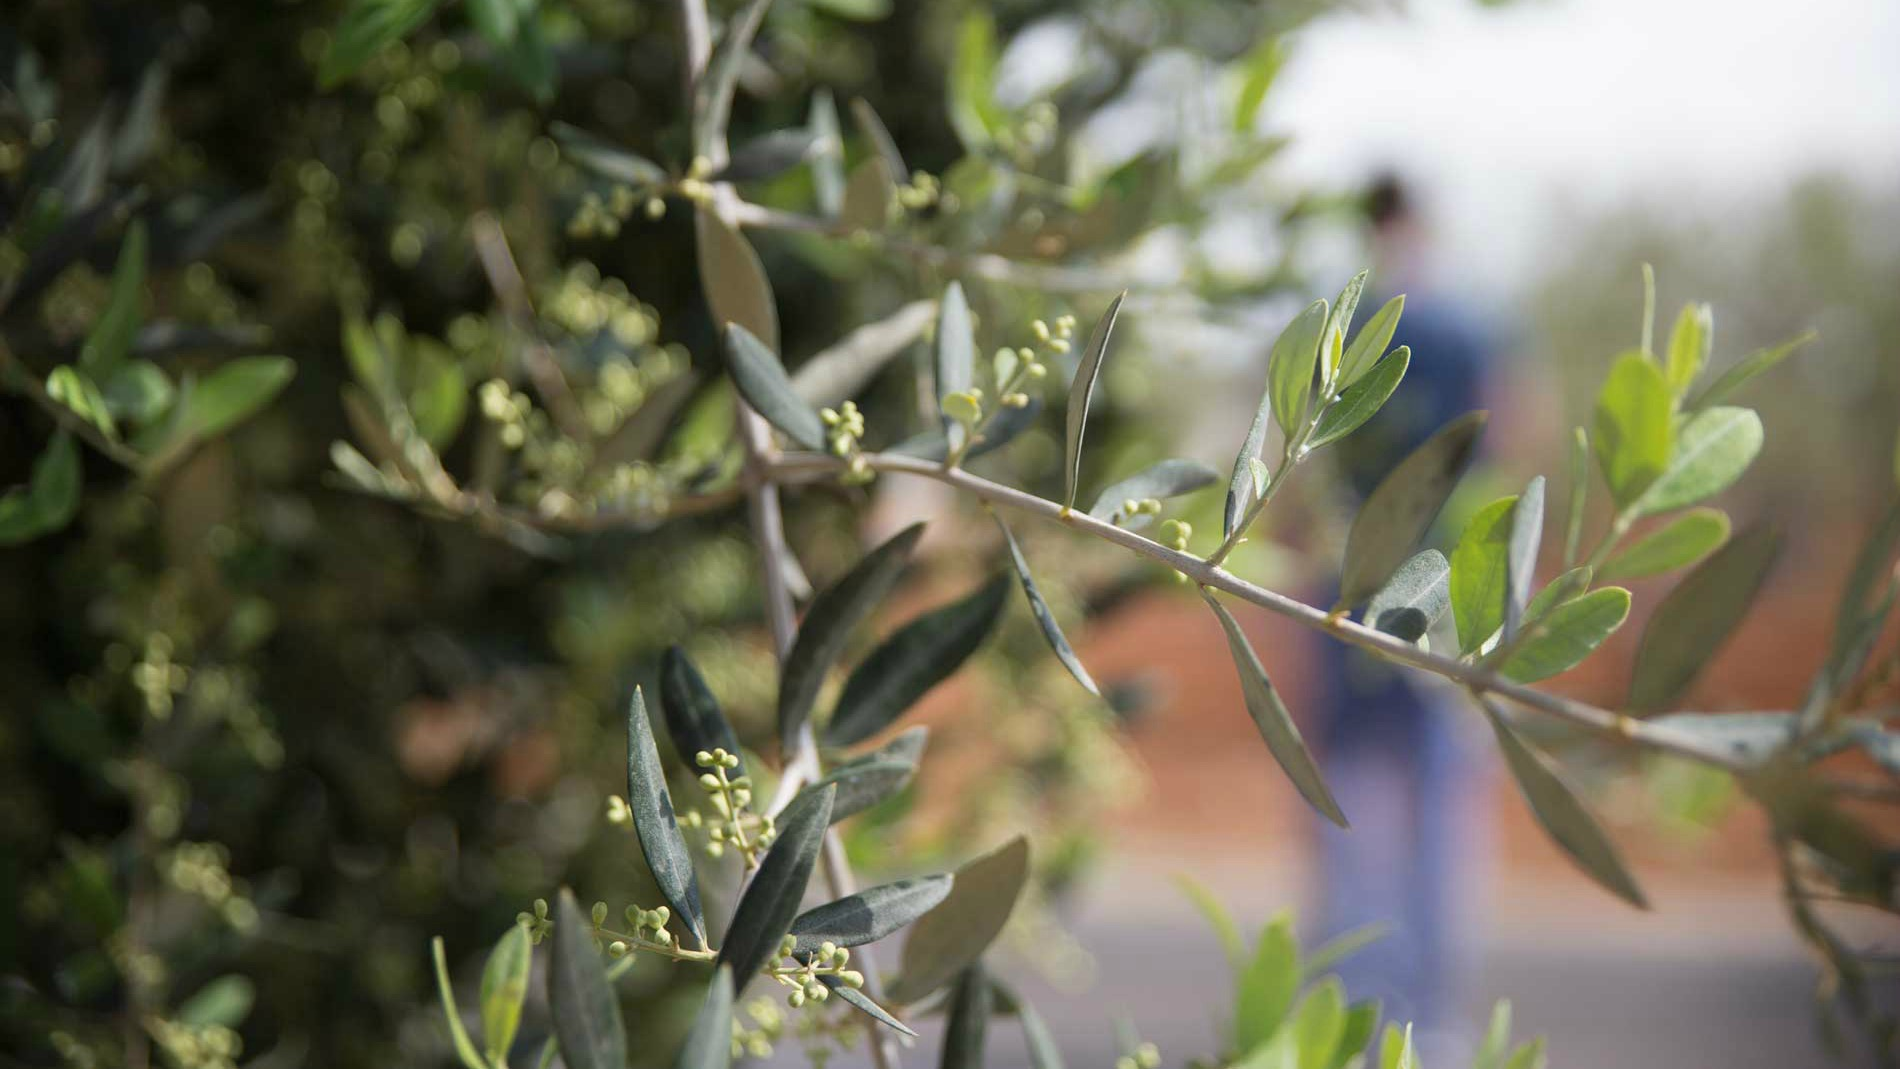 Olive oil tree. Photo by Francois